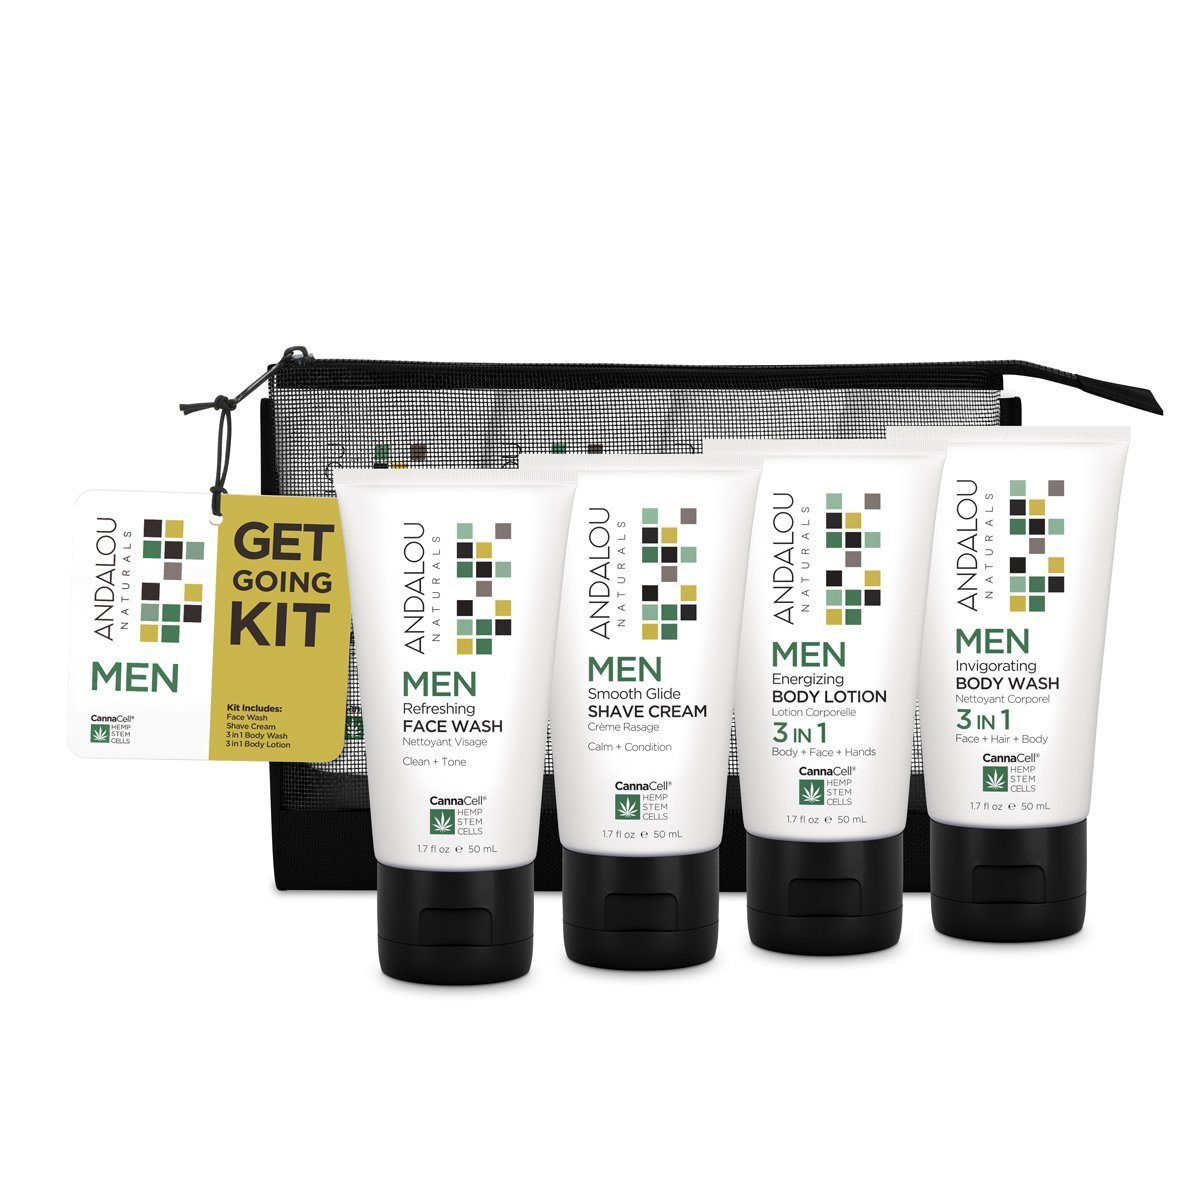 Personal Care - Andalou Naturals - Men's Get Going Kit, 4 Pieces